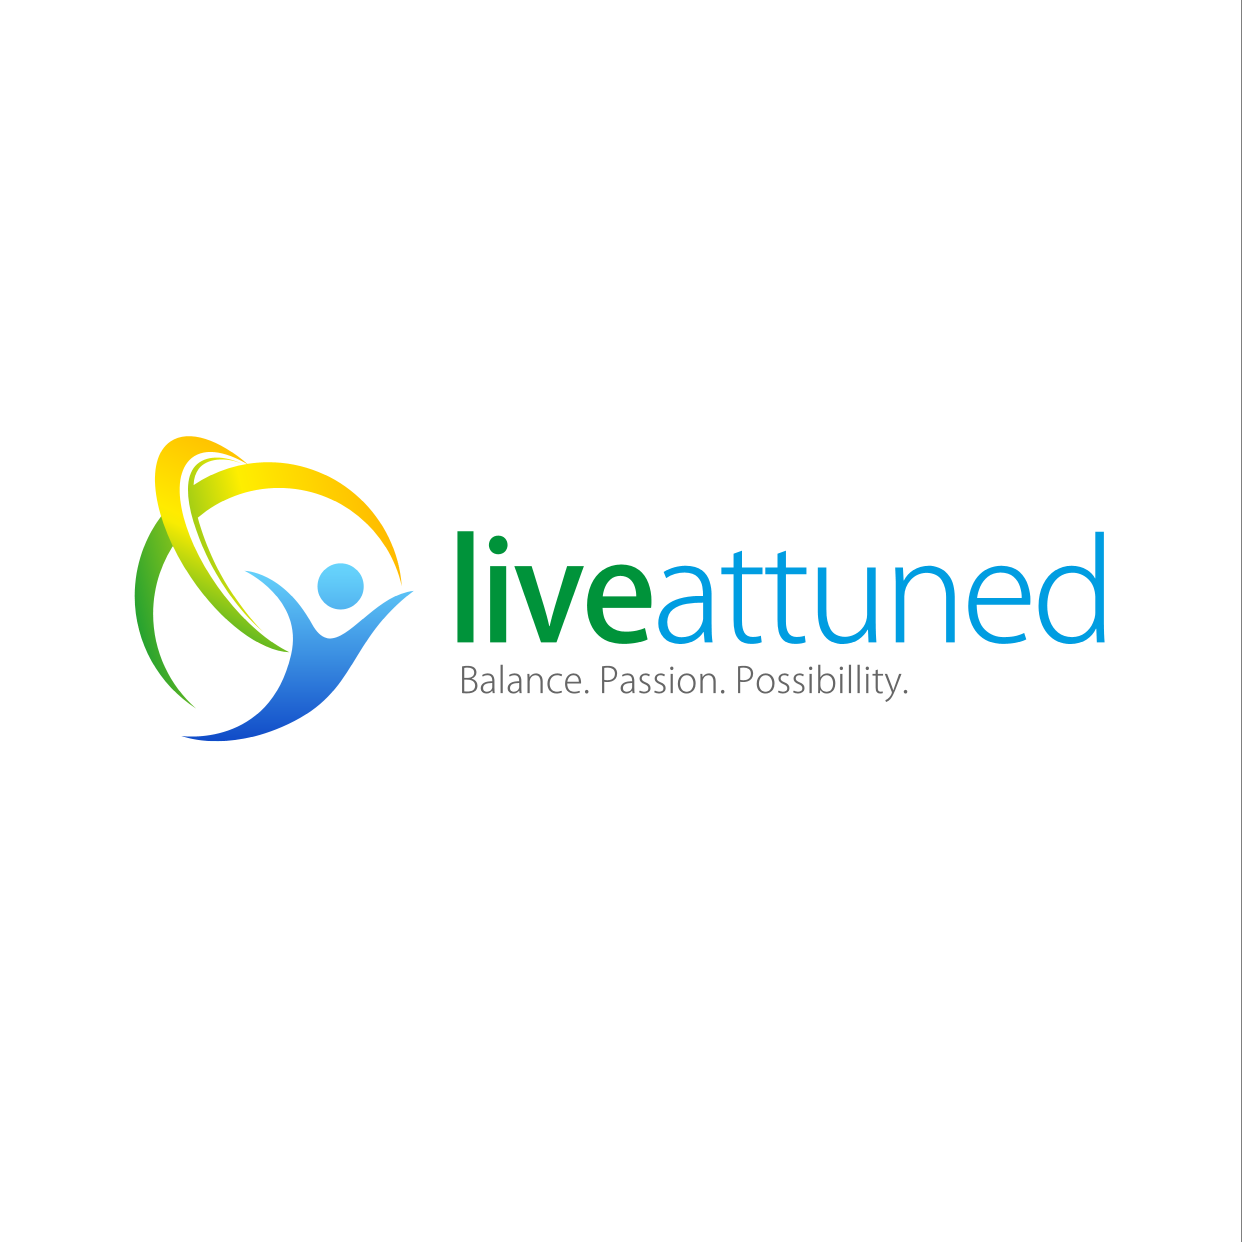 Logo Design by ENNO77 - Entry No. 145 in the Logo Design Contest New Logo Design for Live Attuned.